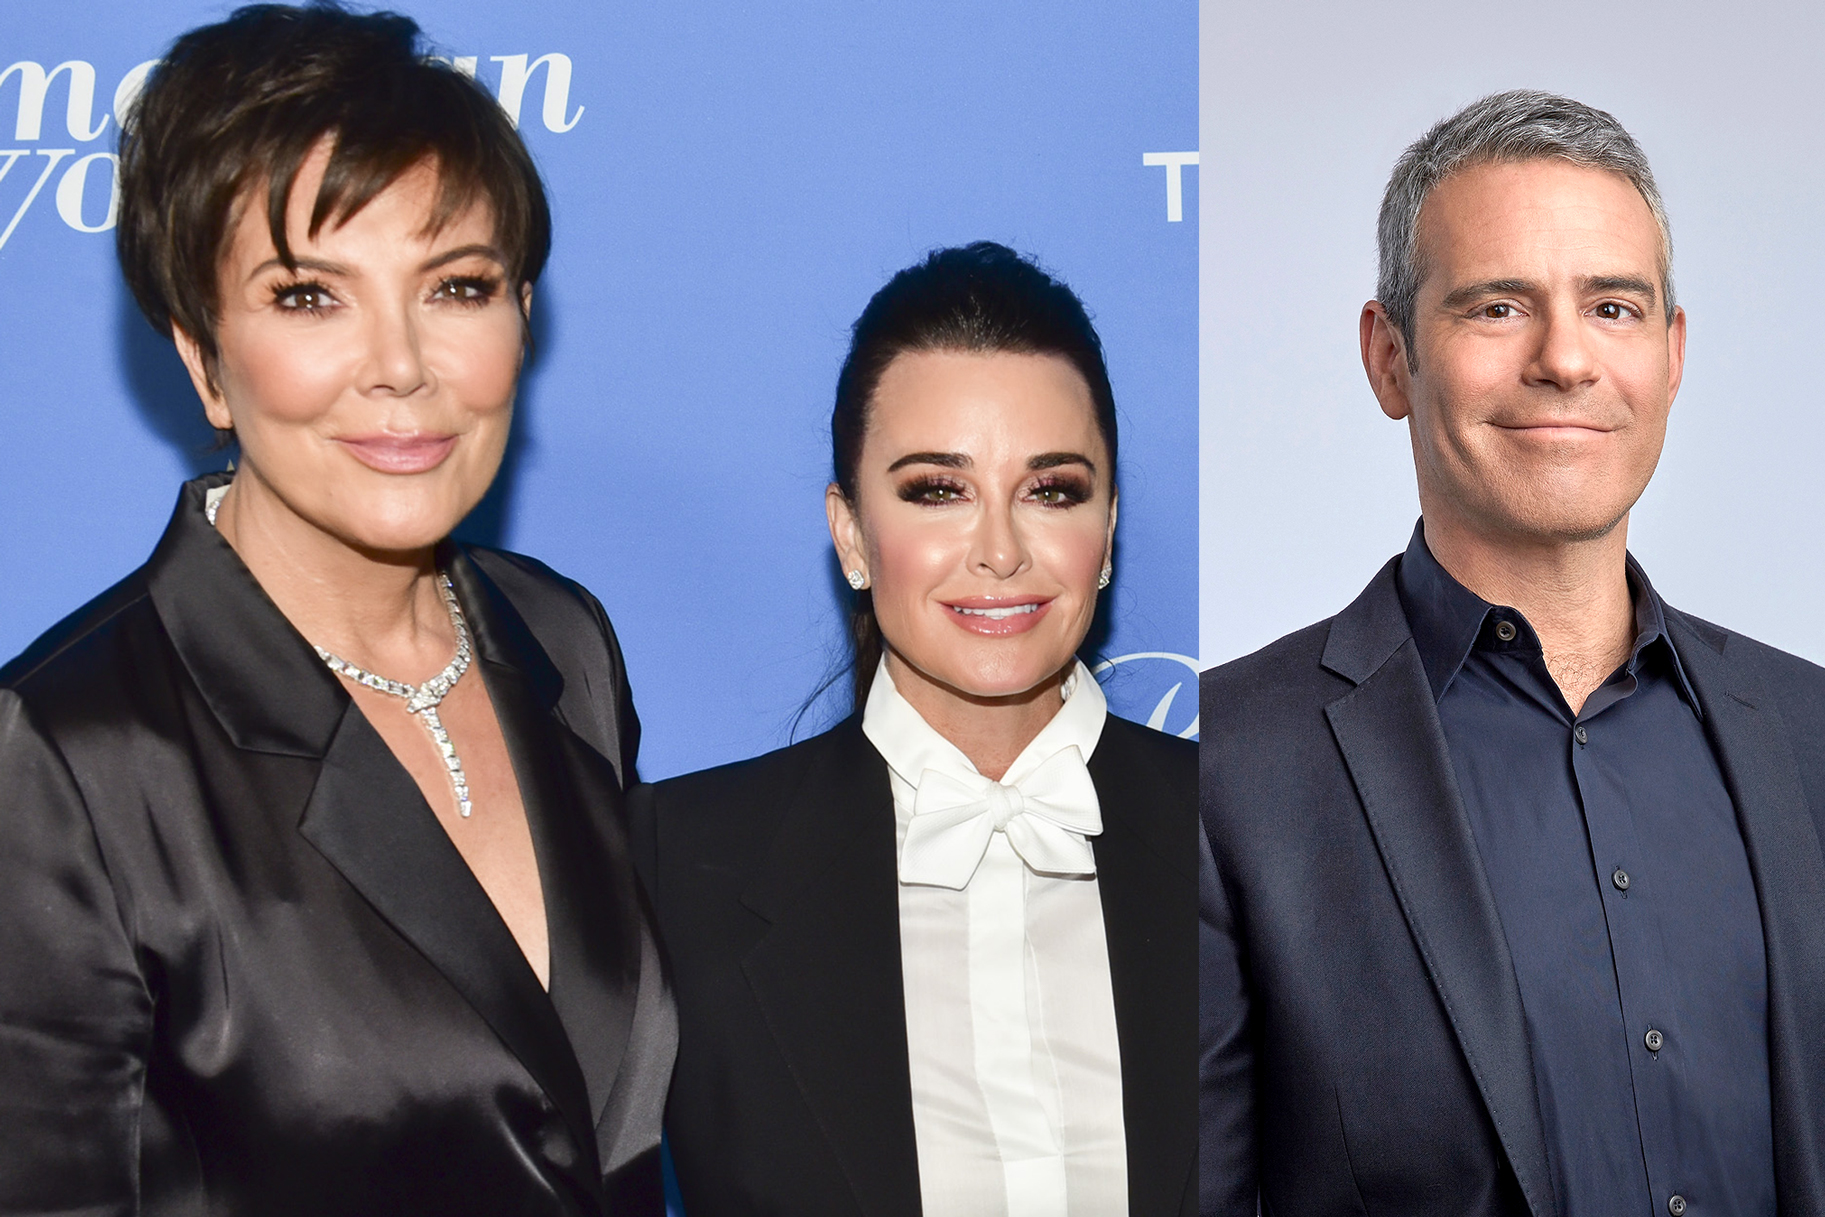 Kris Jenner Kyle Richards Andy Cohen